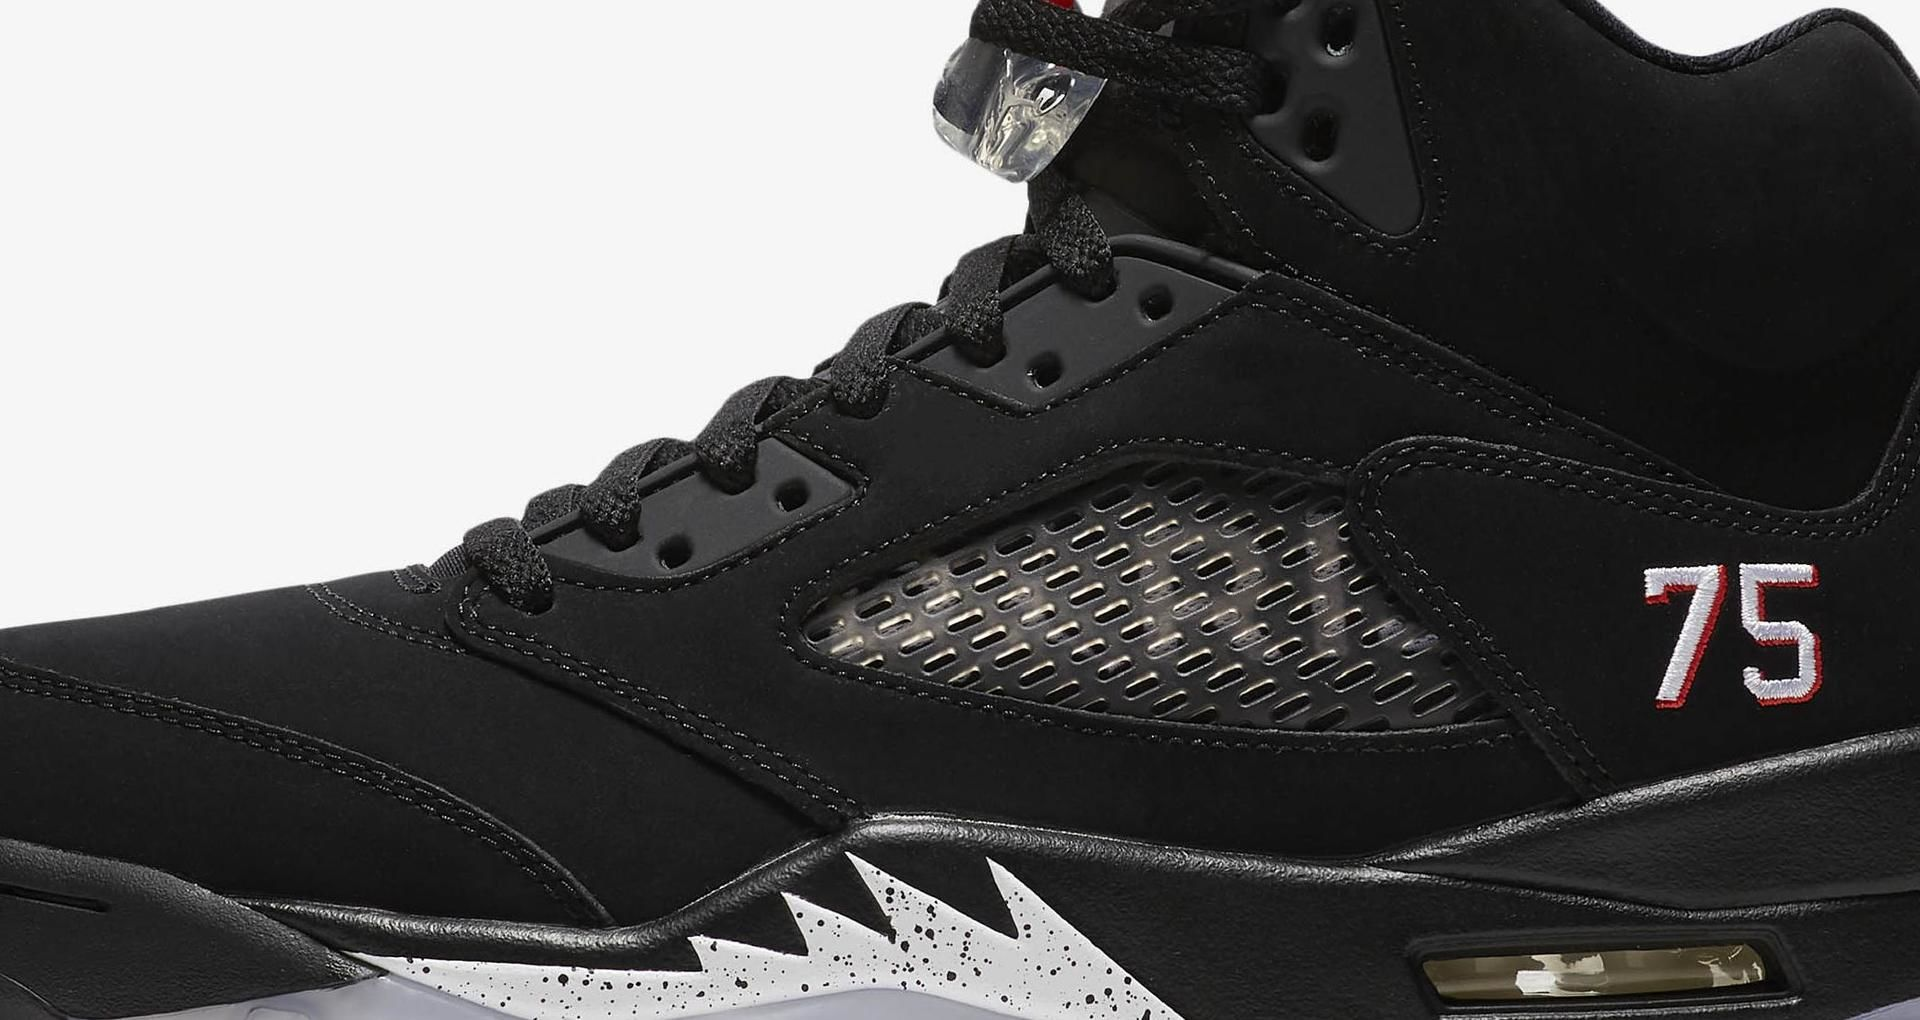 new product c8643 c3a2c Air Jordan 5 PSG ' Black & Challenge Red' Release Date ...